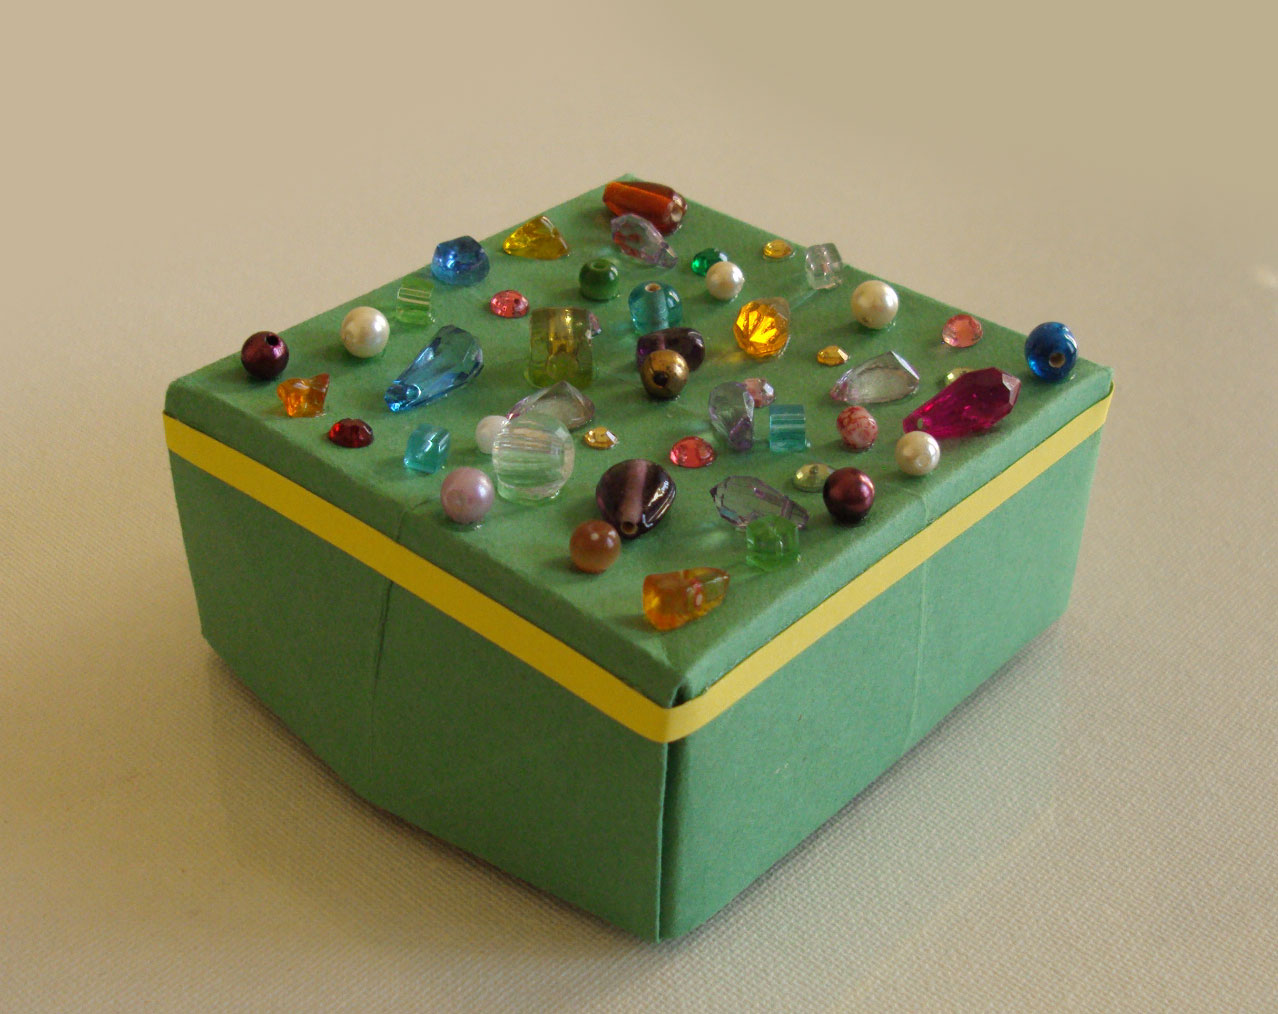 Free Information and News about Handmade Gifts - Handmade Jewelry Boxes - Handmade Gifts India Online - Handmade Giftables for sale